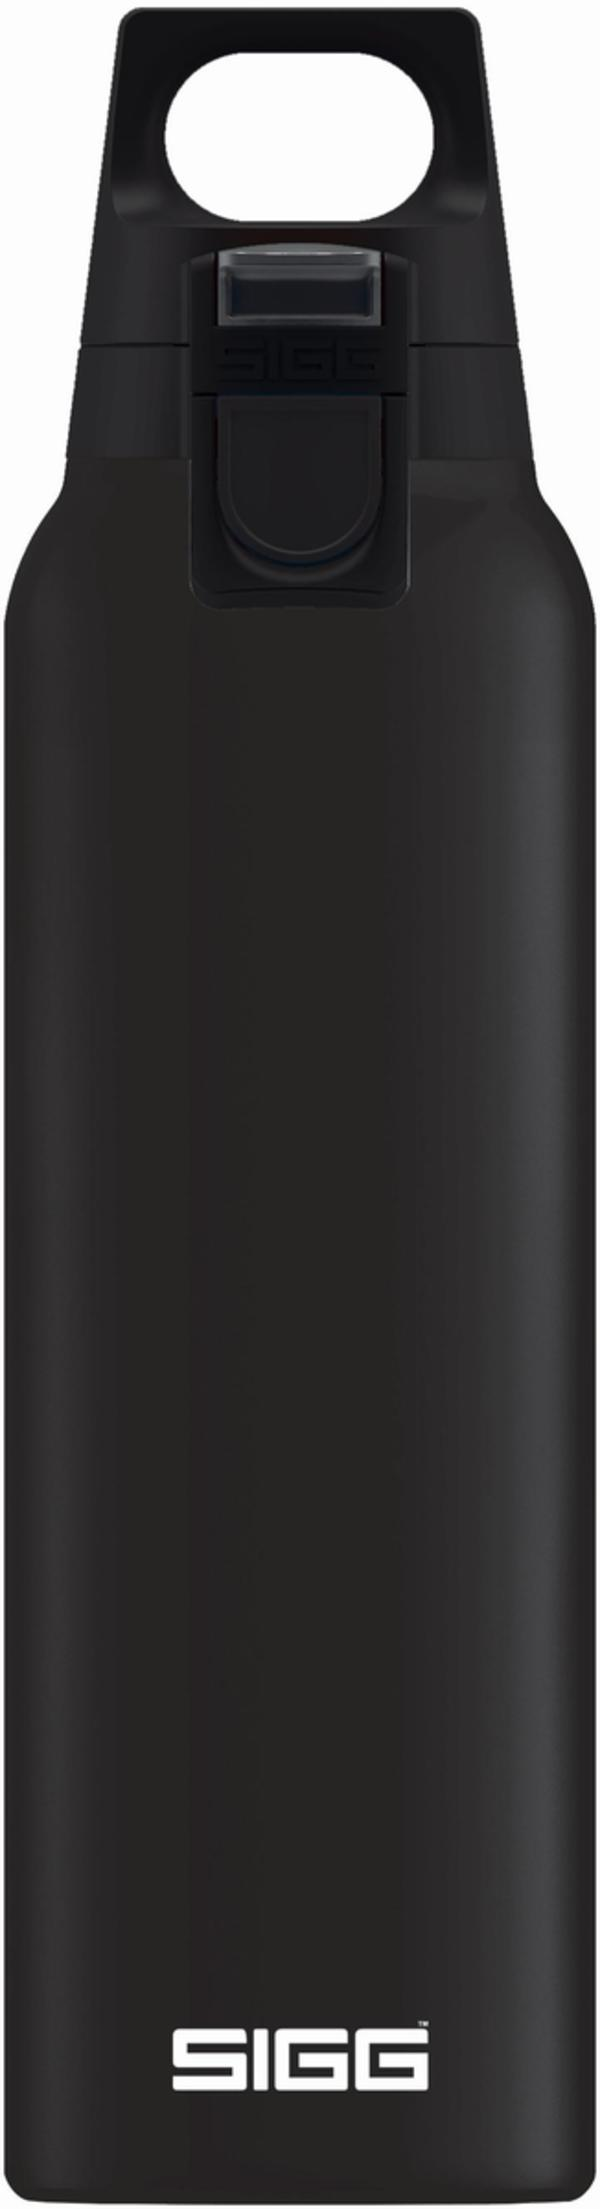 SIGG Trinkflasche Hot & Cold One Black 0.5l